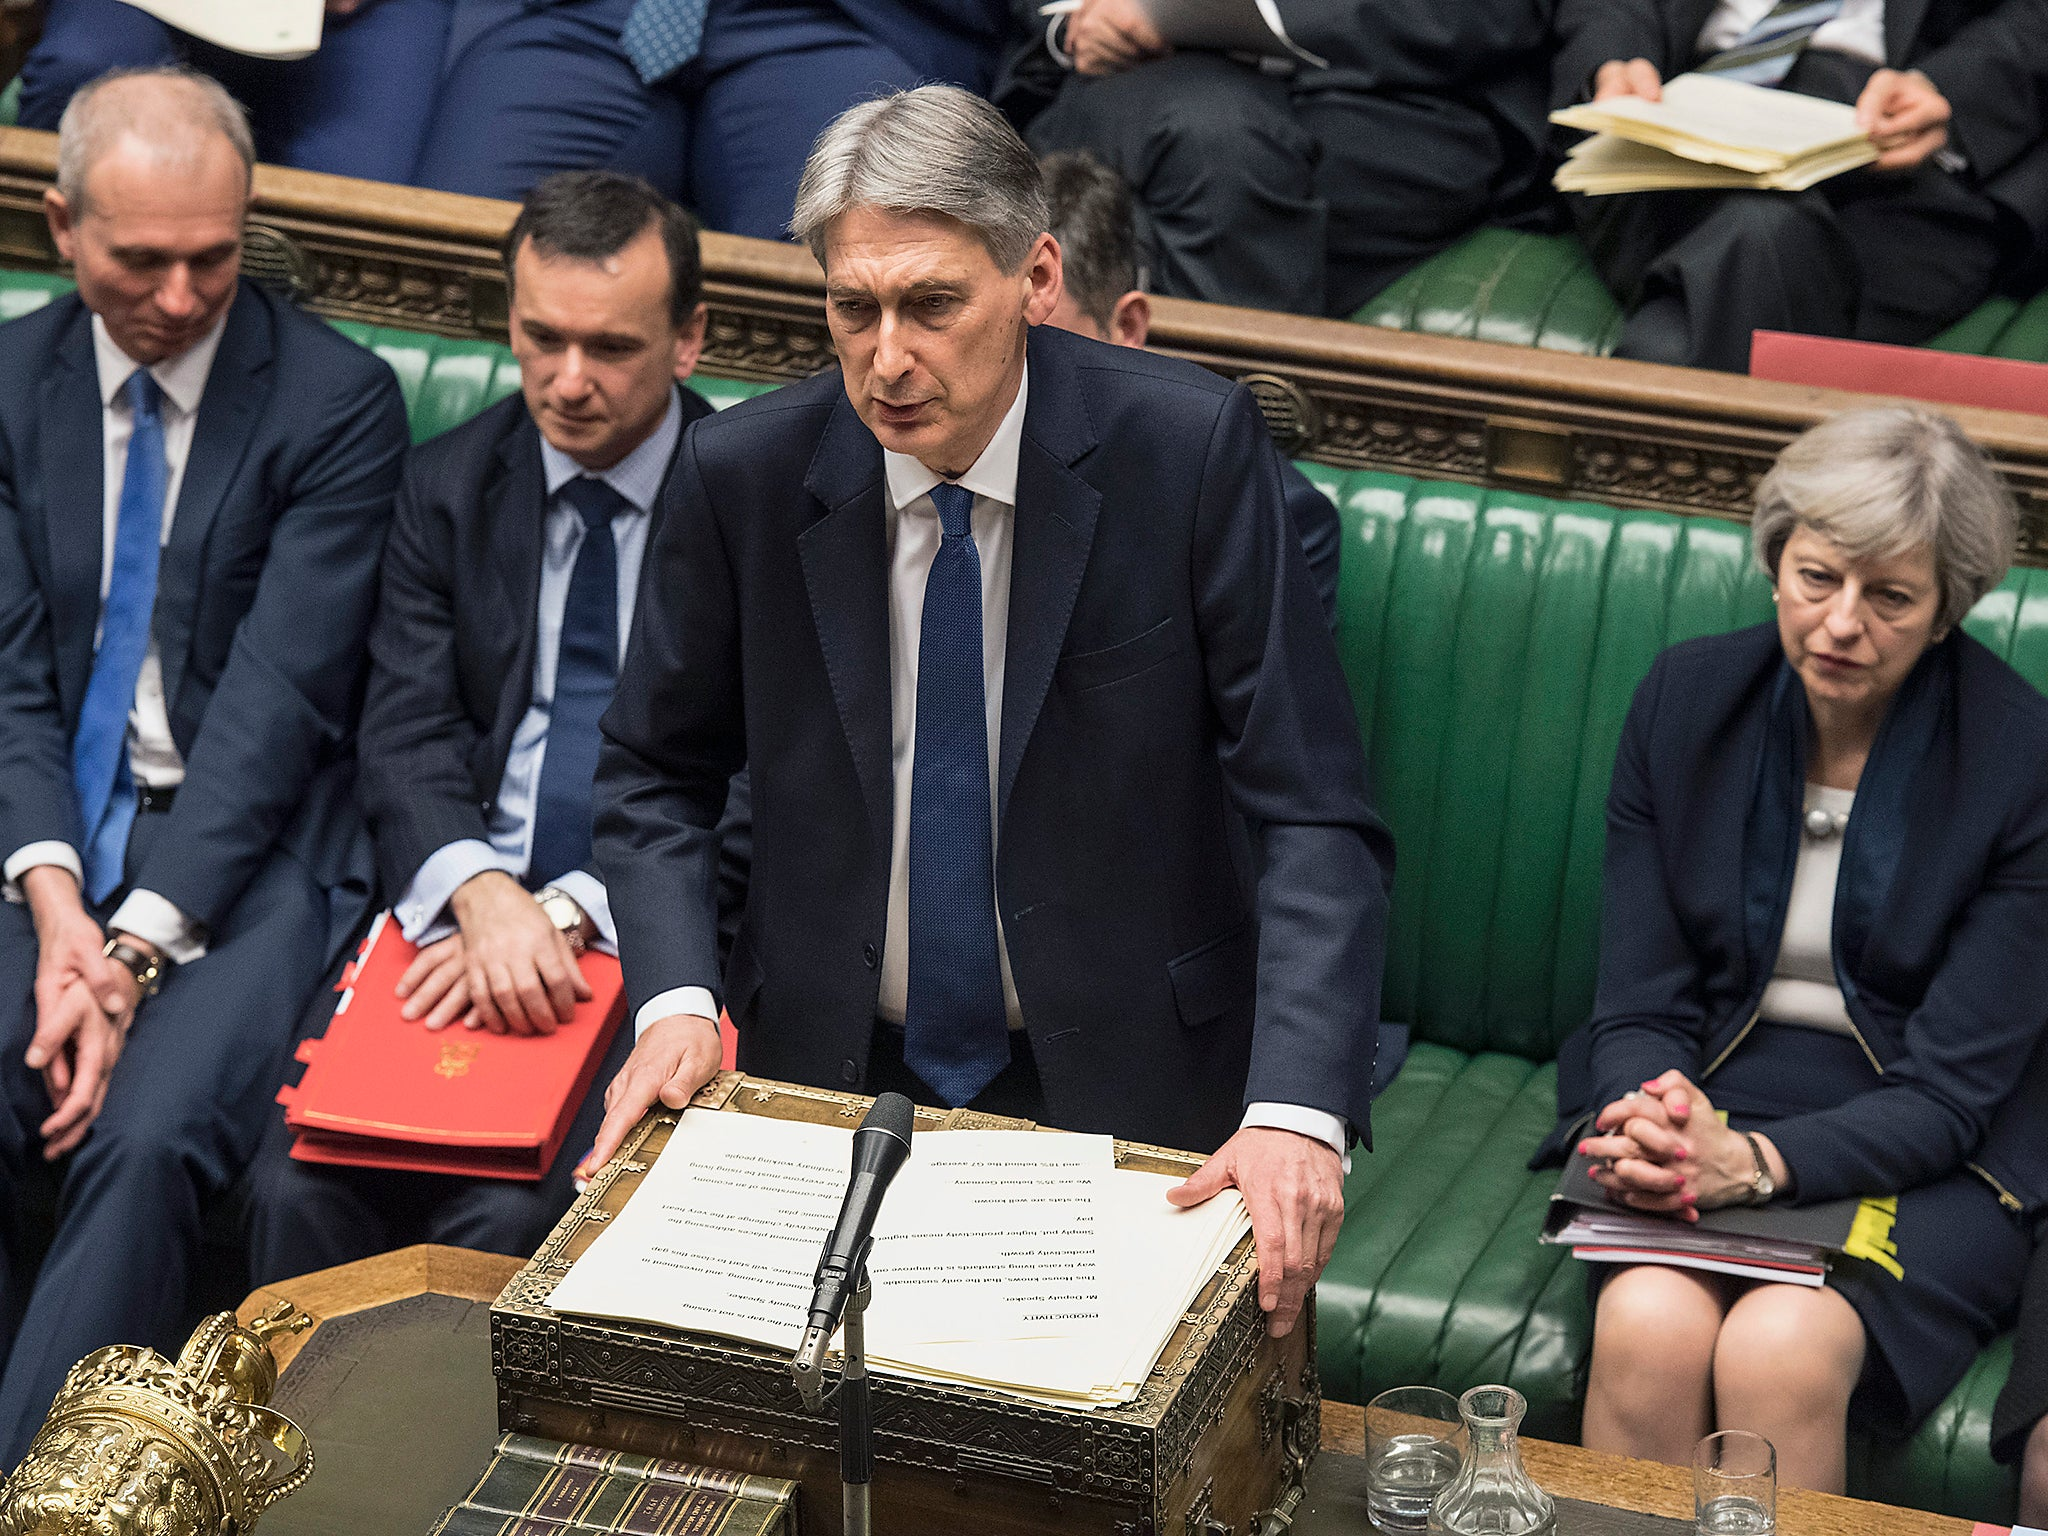 Budget 2017: Philip Hammond breaks Tory manifesto promise not to raise National Insurance contributions